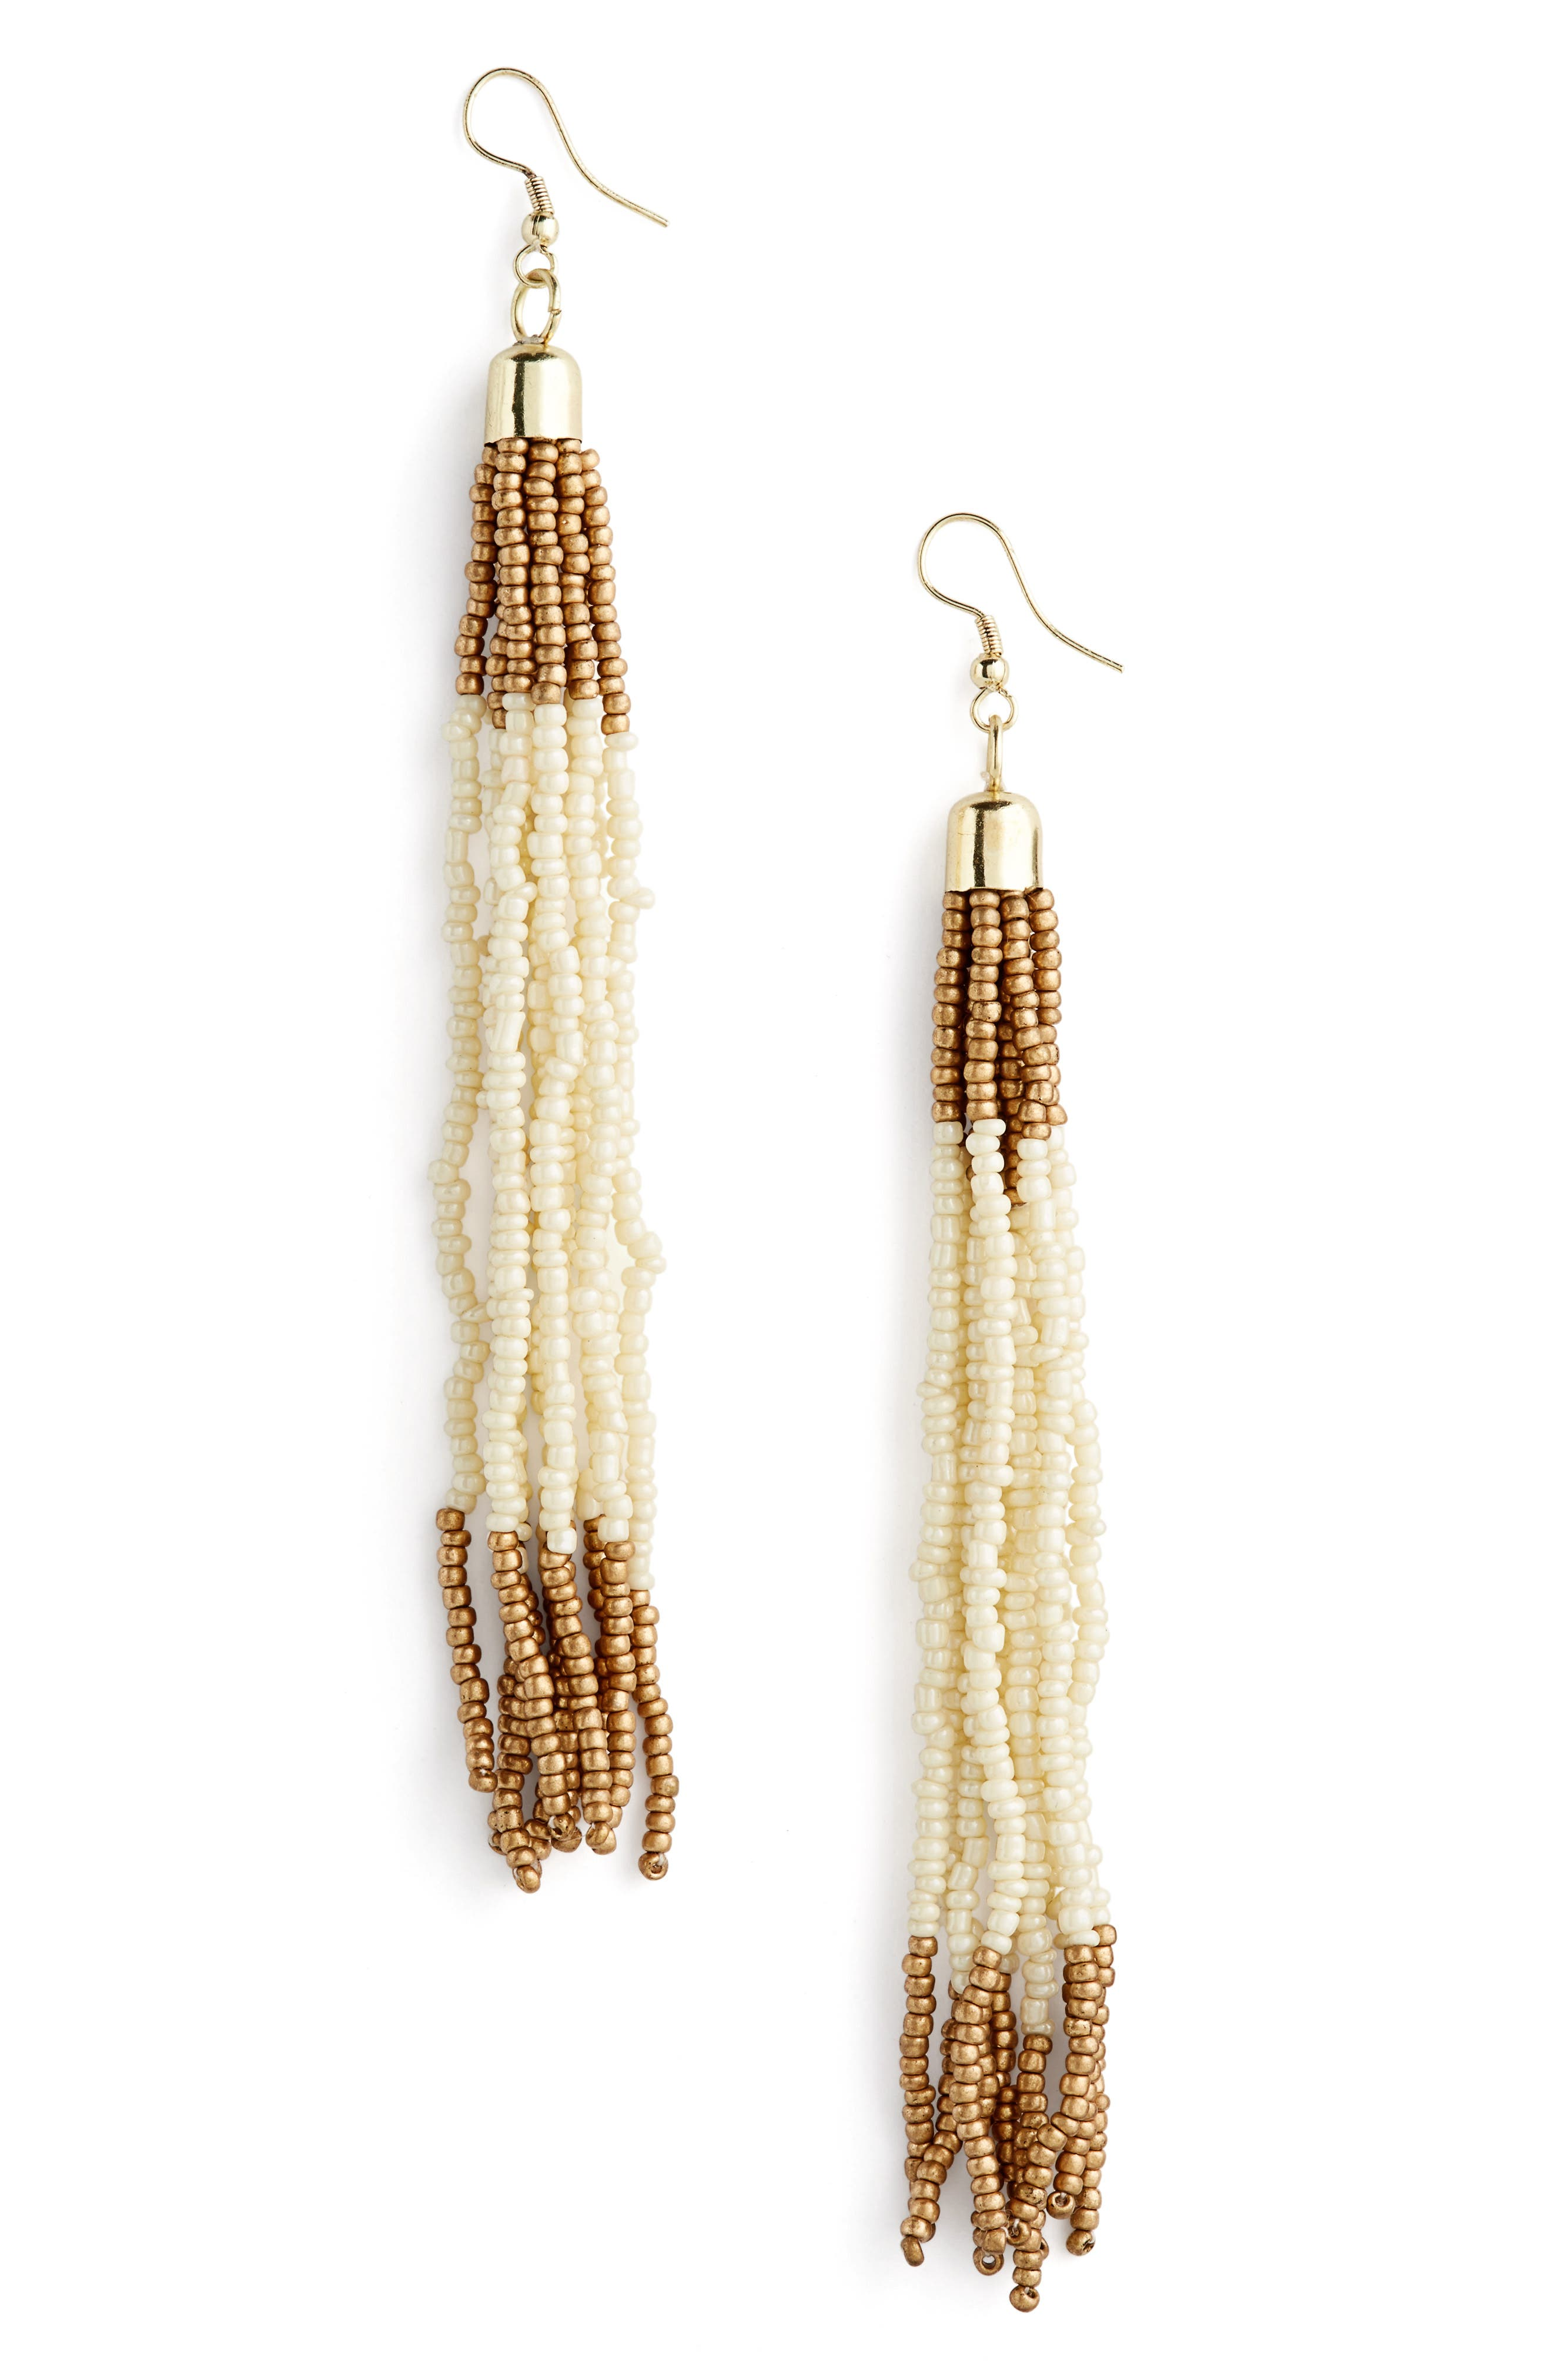 Tasha Beaded Tassel Earrings